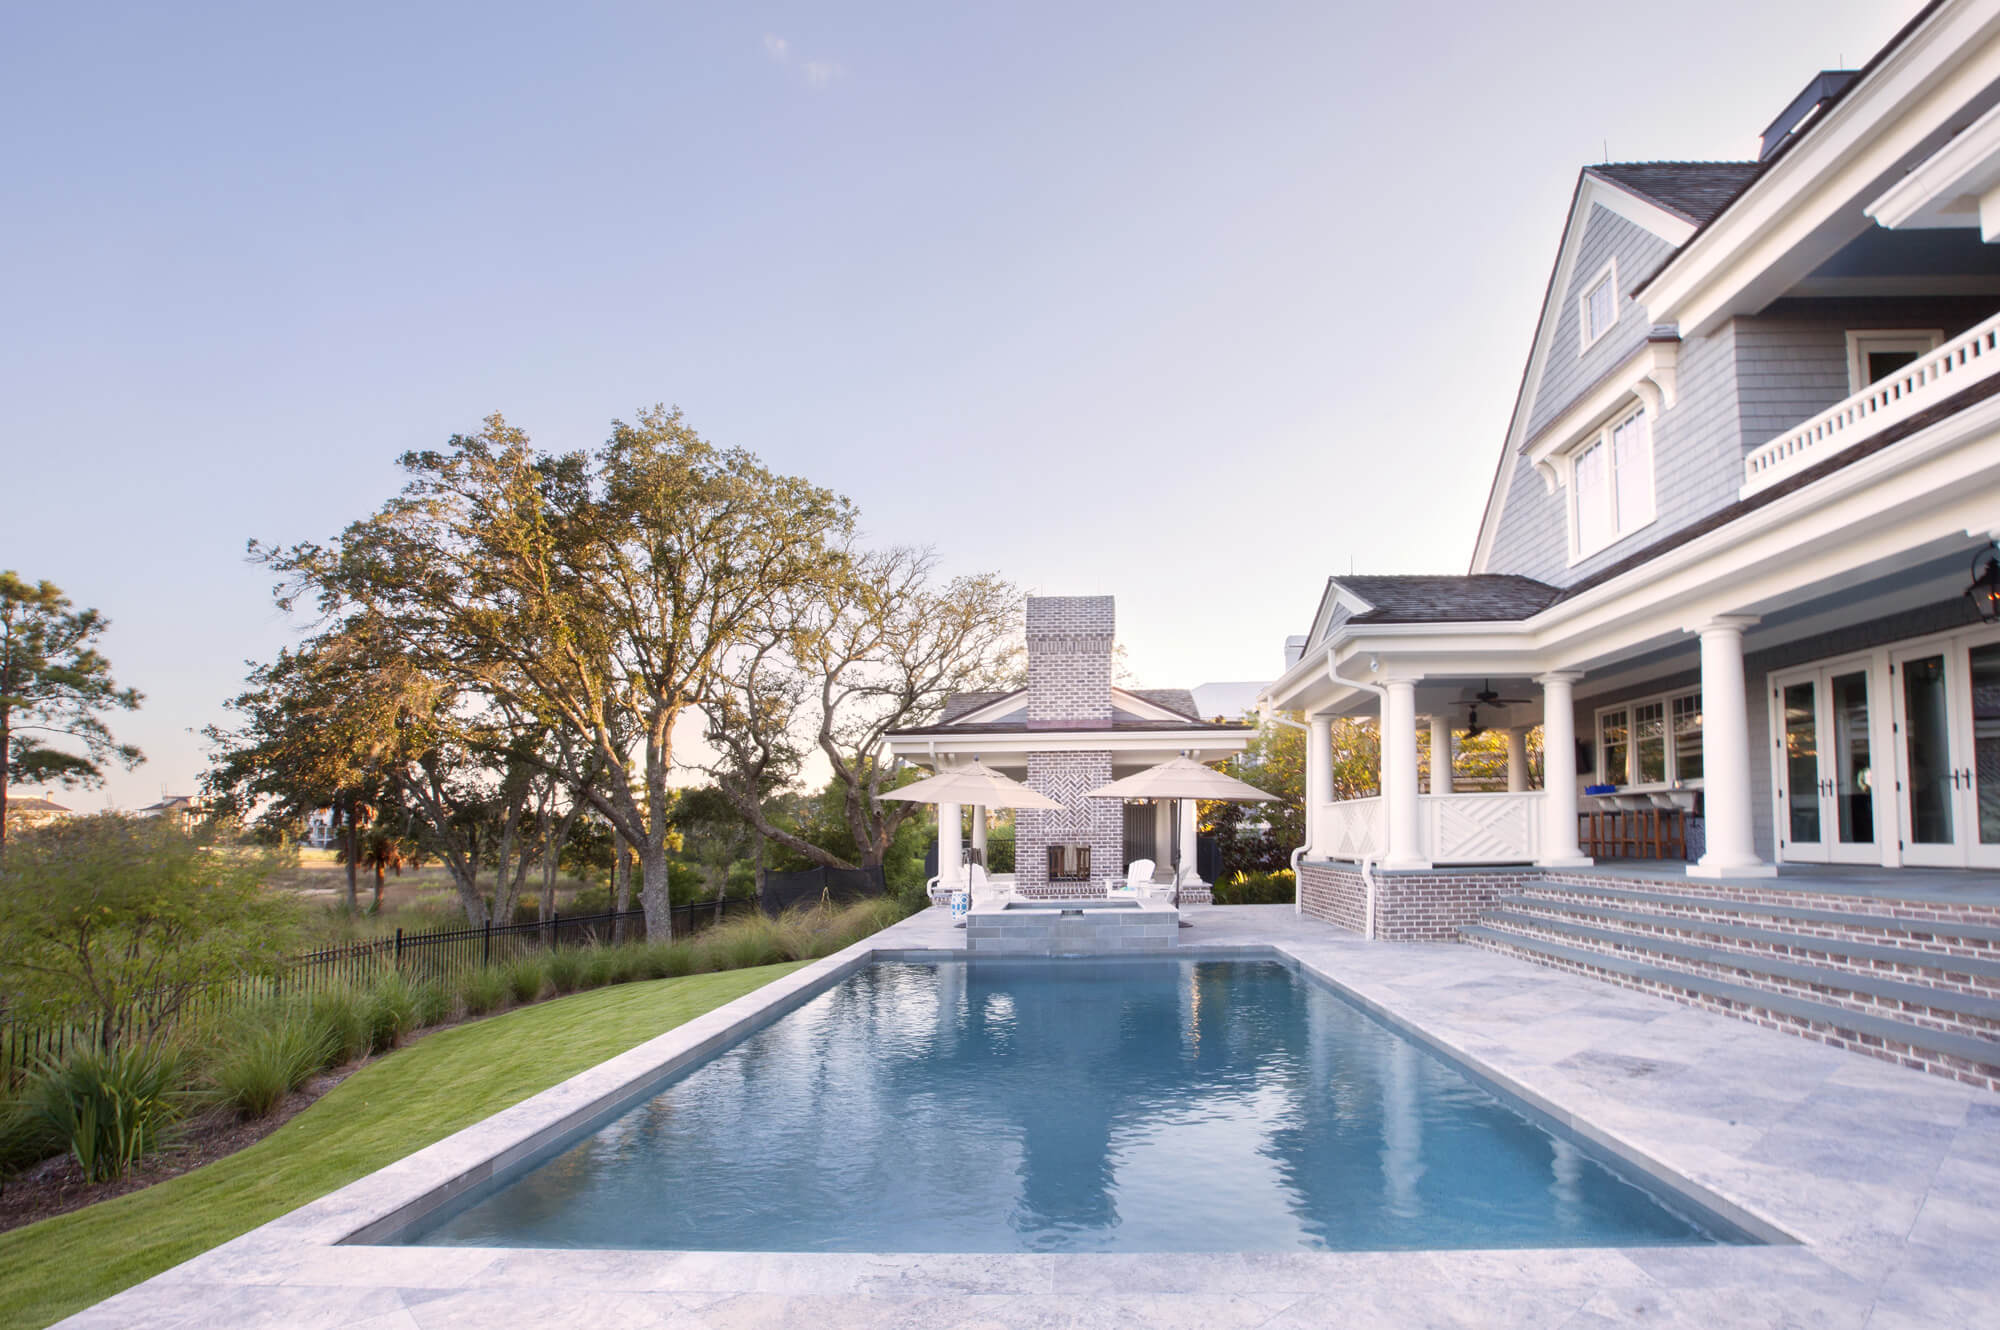 OSDLA-Outdoor-Spatial-Design-Charleston